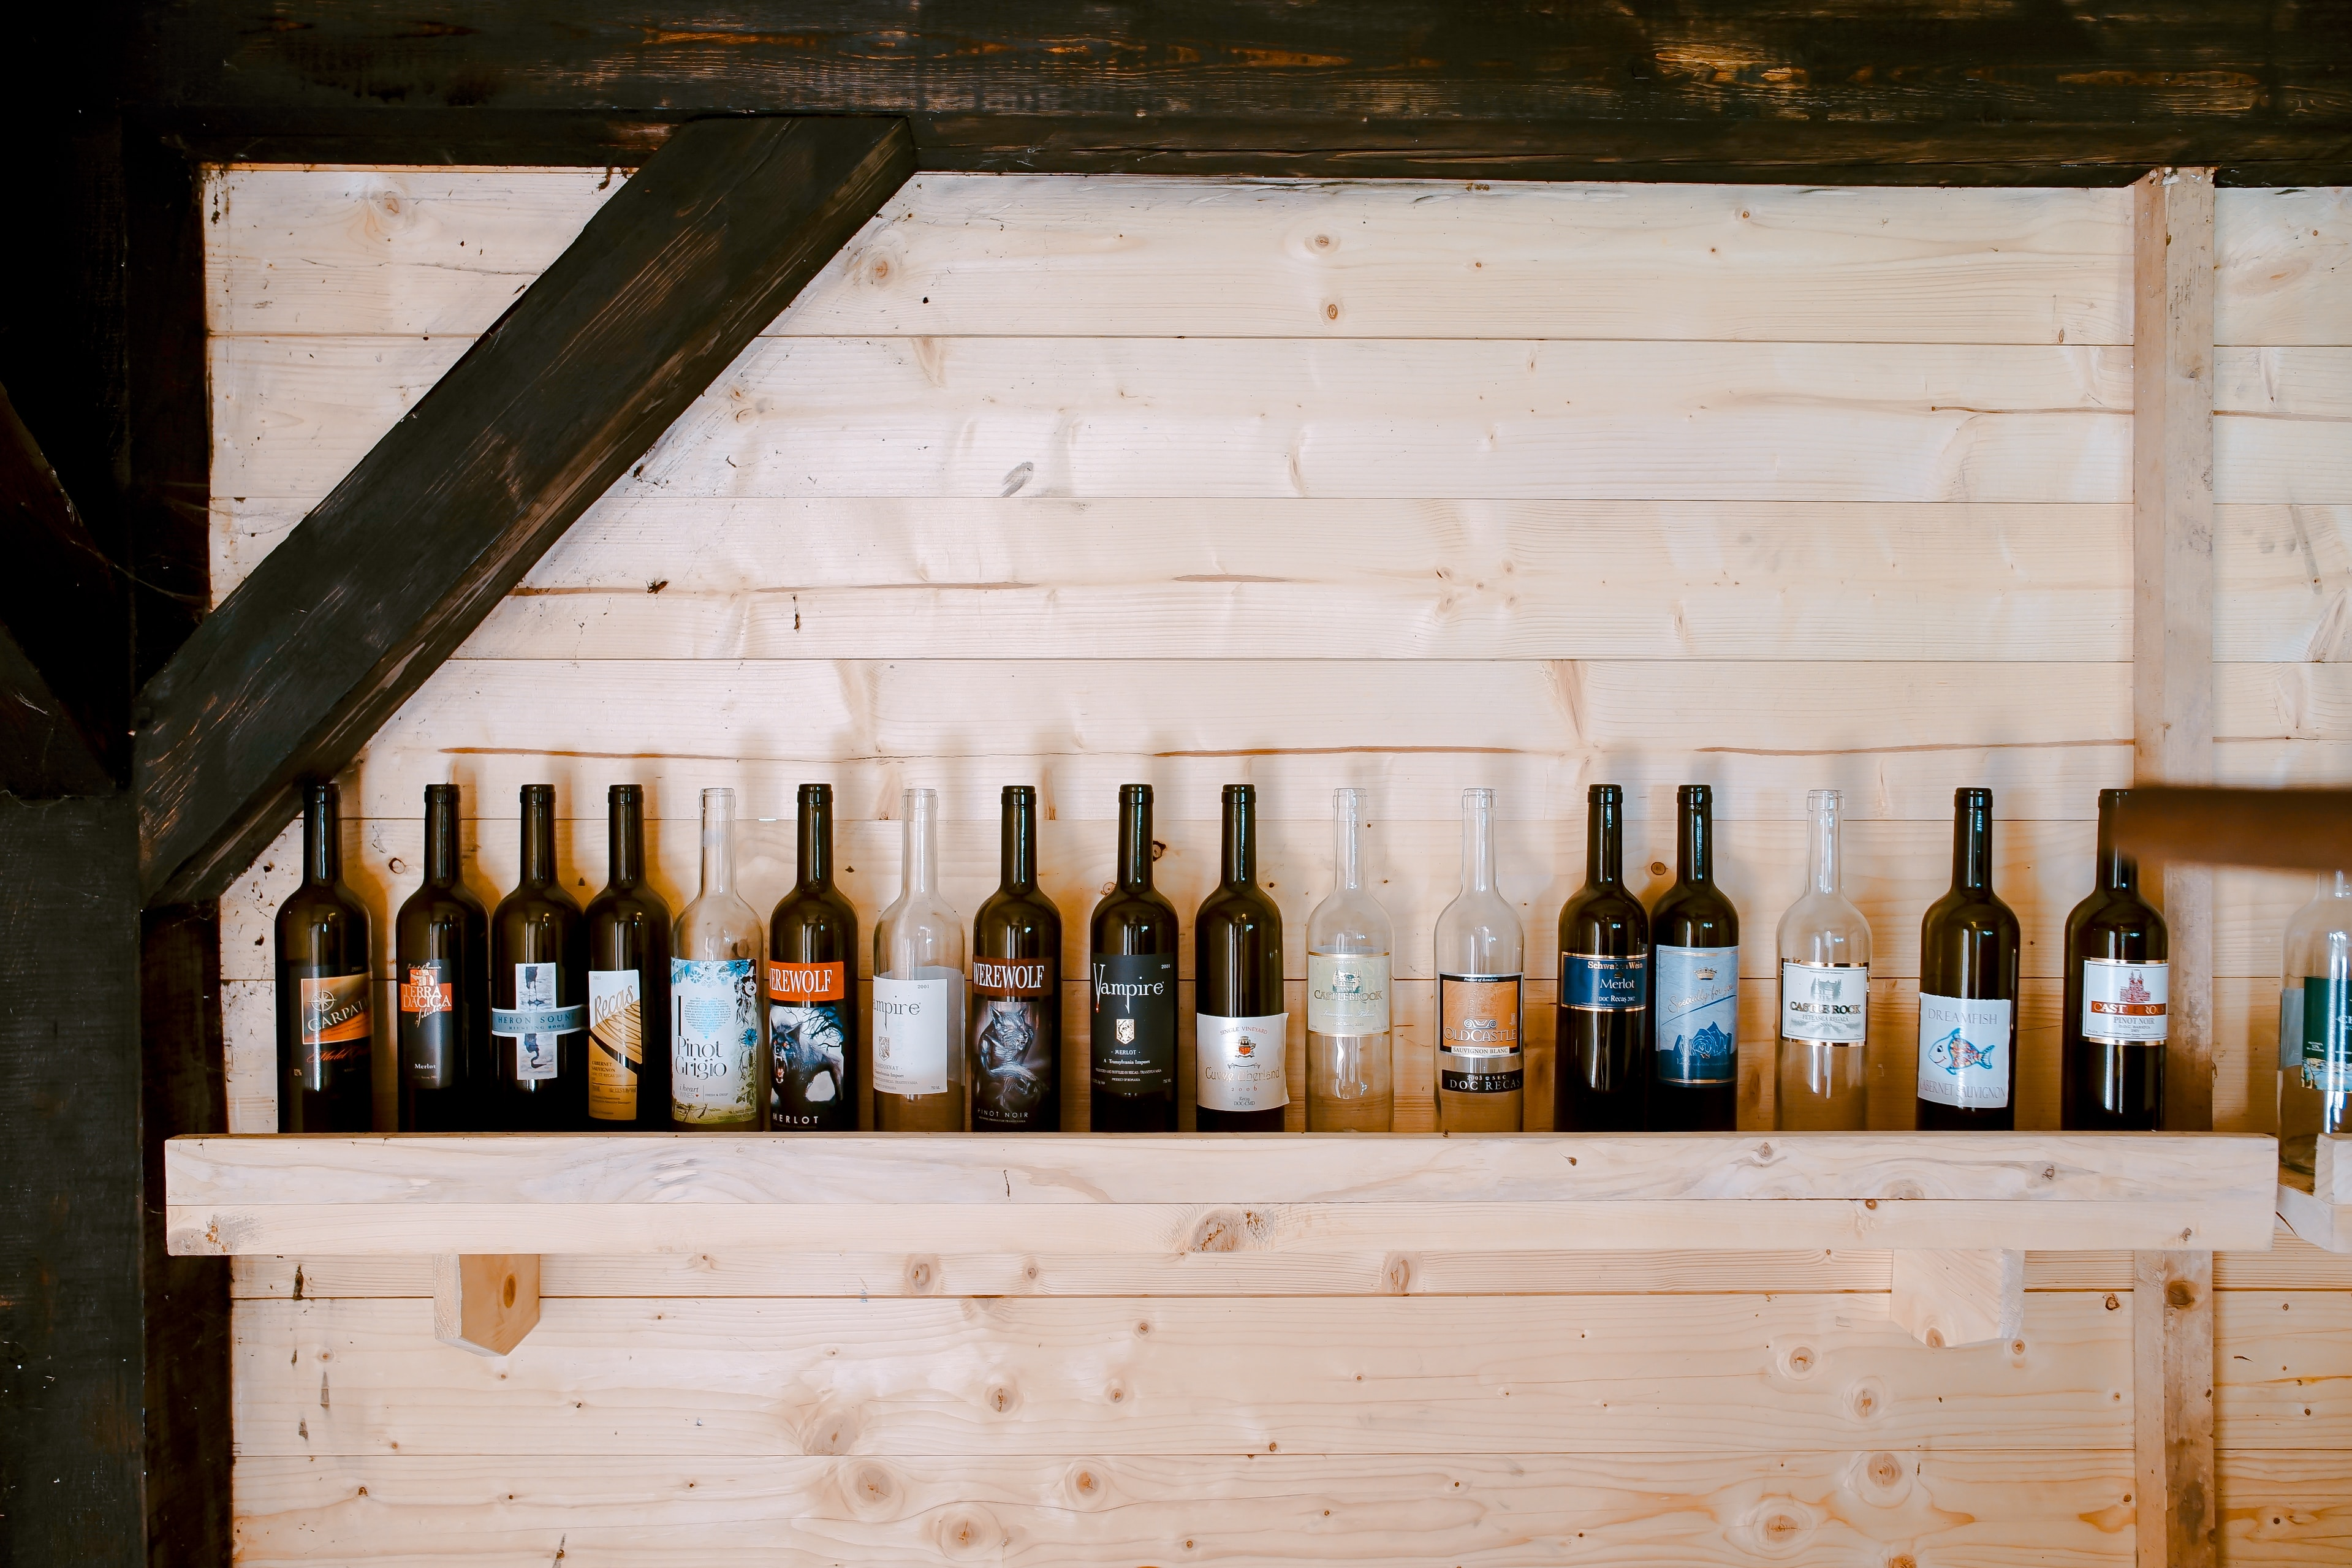 8 Recycled Wine Bottle Decorations For Your Wedding - mywedding